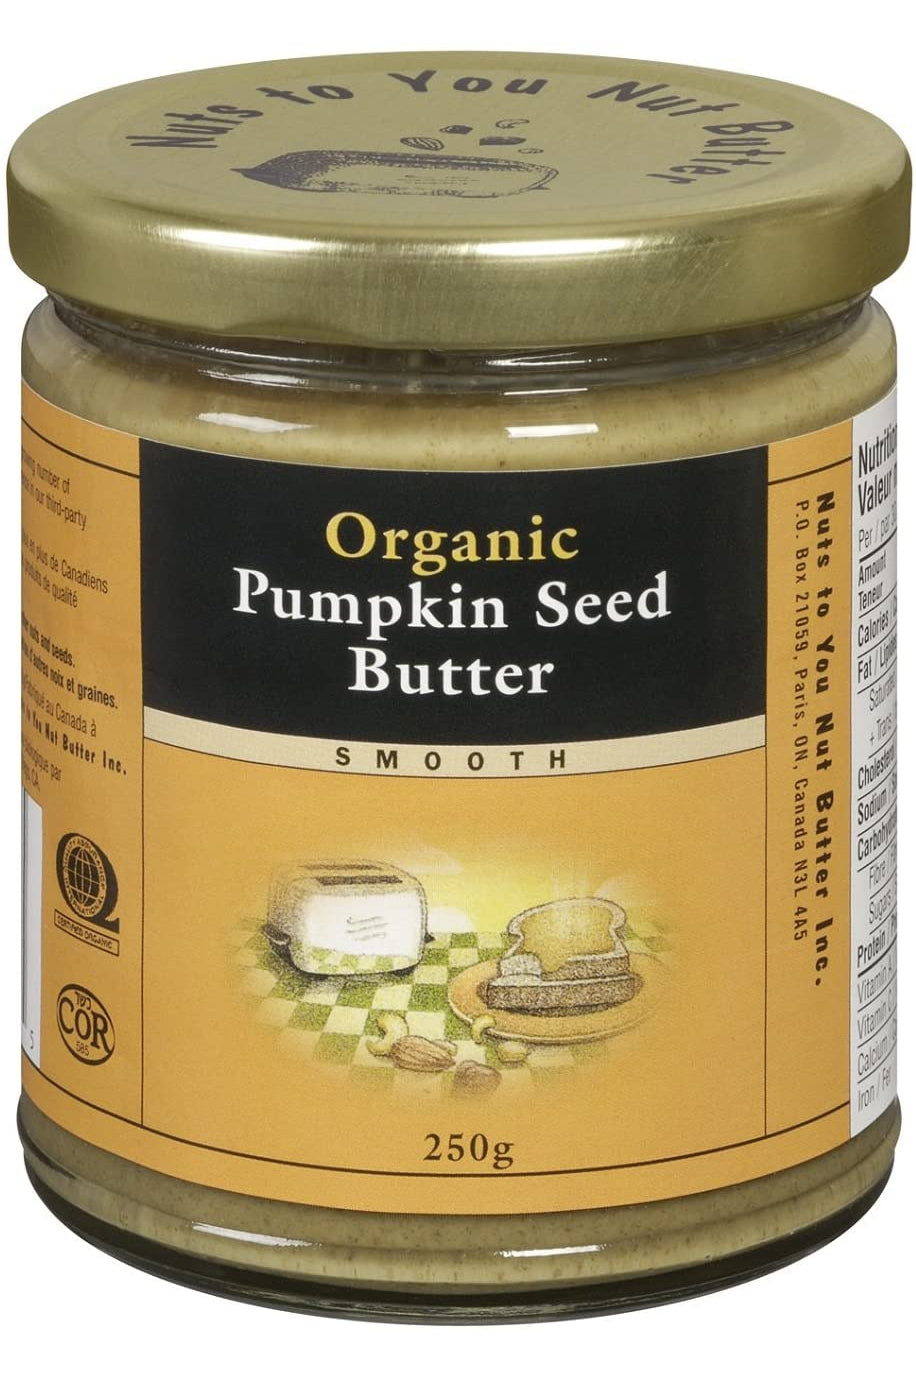 Nuts to You Organic Pumpkin Seed Butter - Smooth 250g